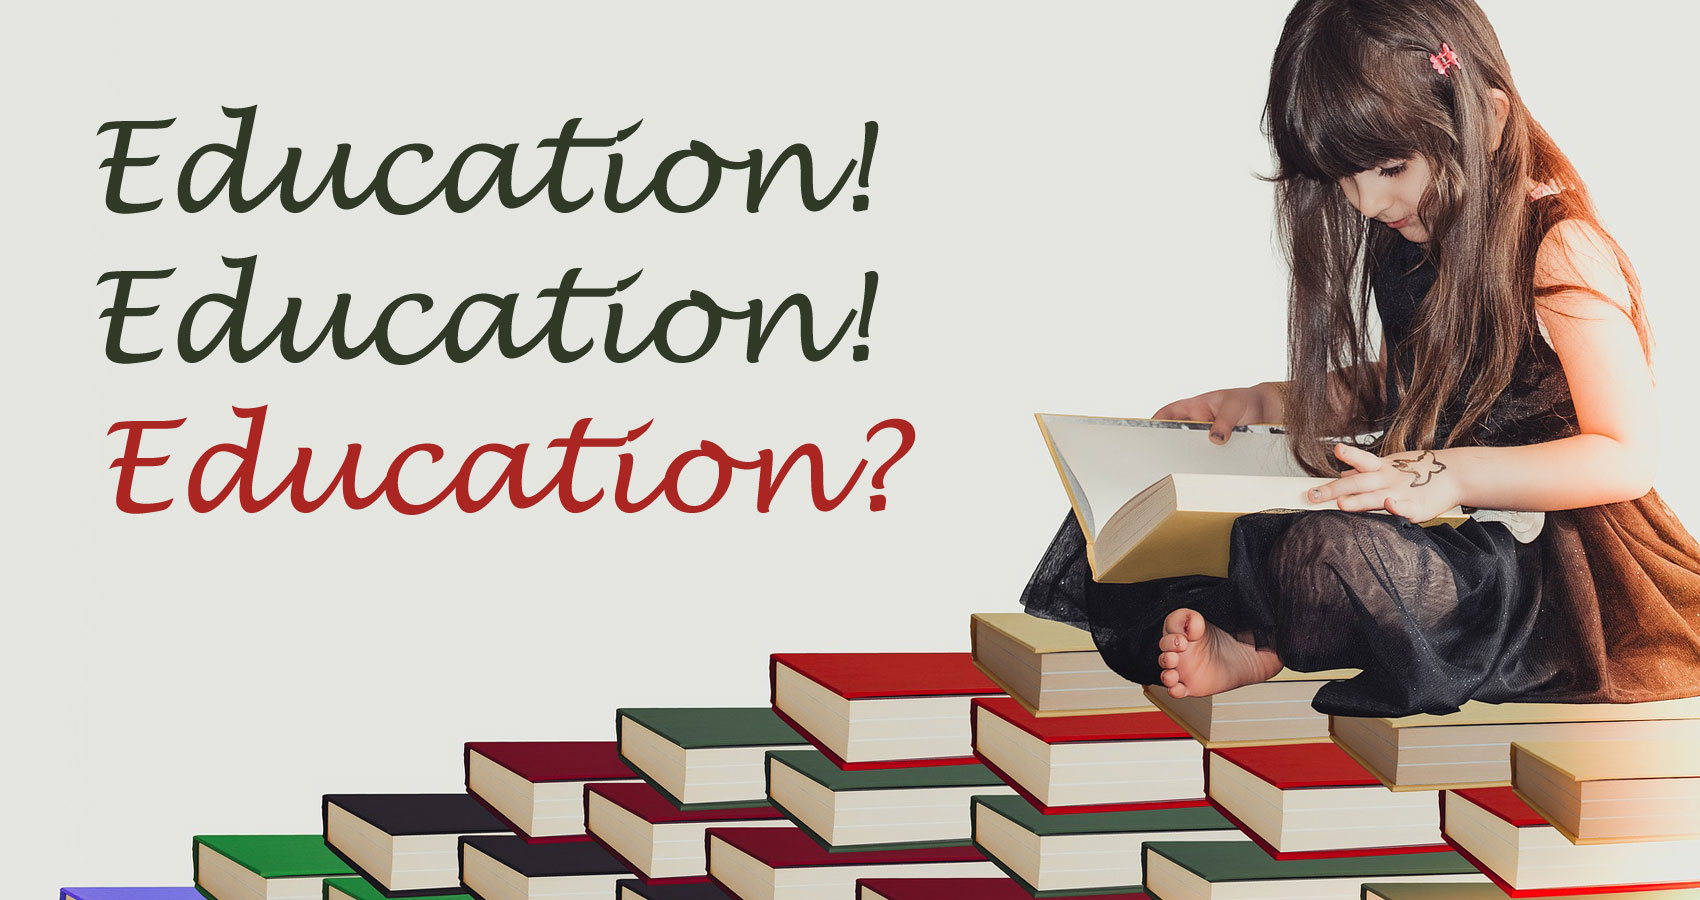 Education! Education! Education? by Paul Anthony Obey at Spillwords.com